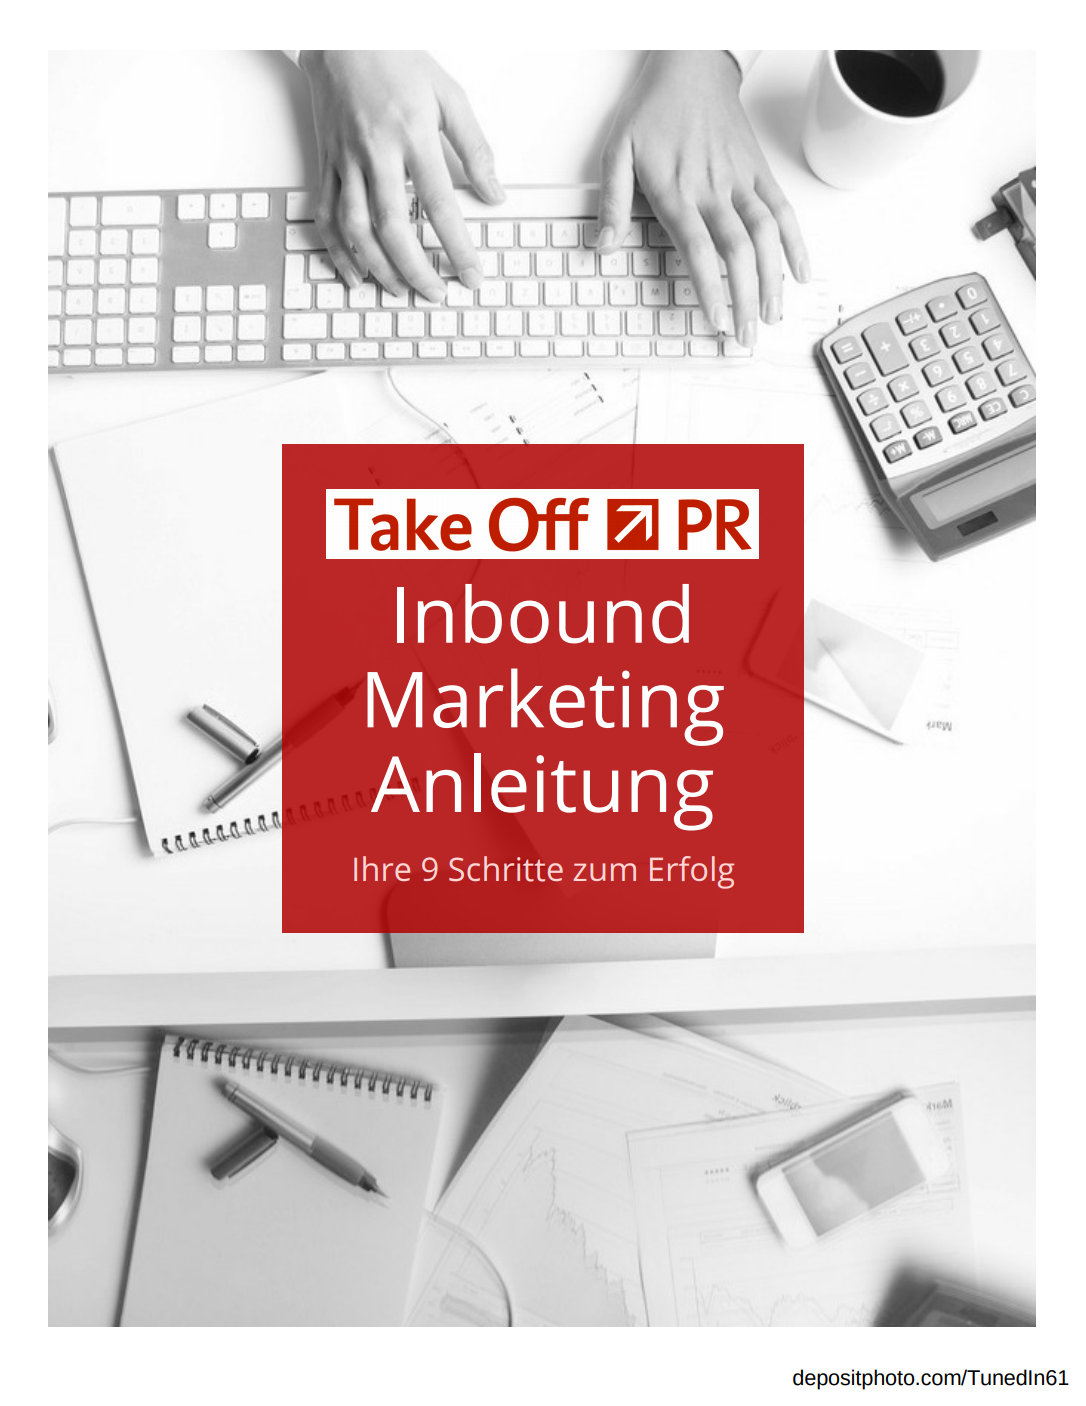 Inbound Marketing Anleitung (cover photo).png